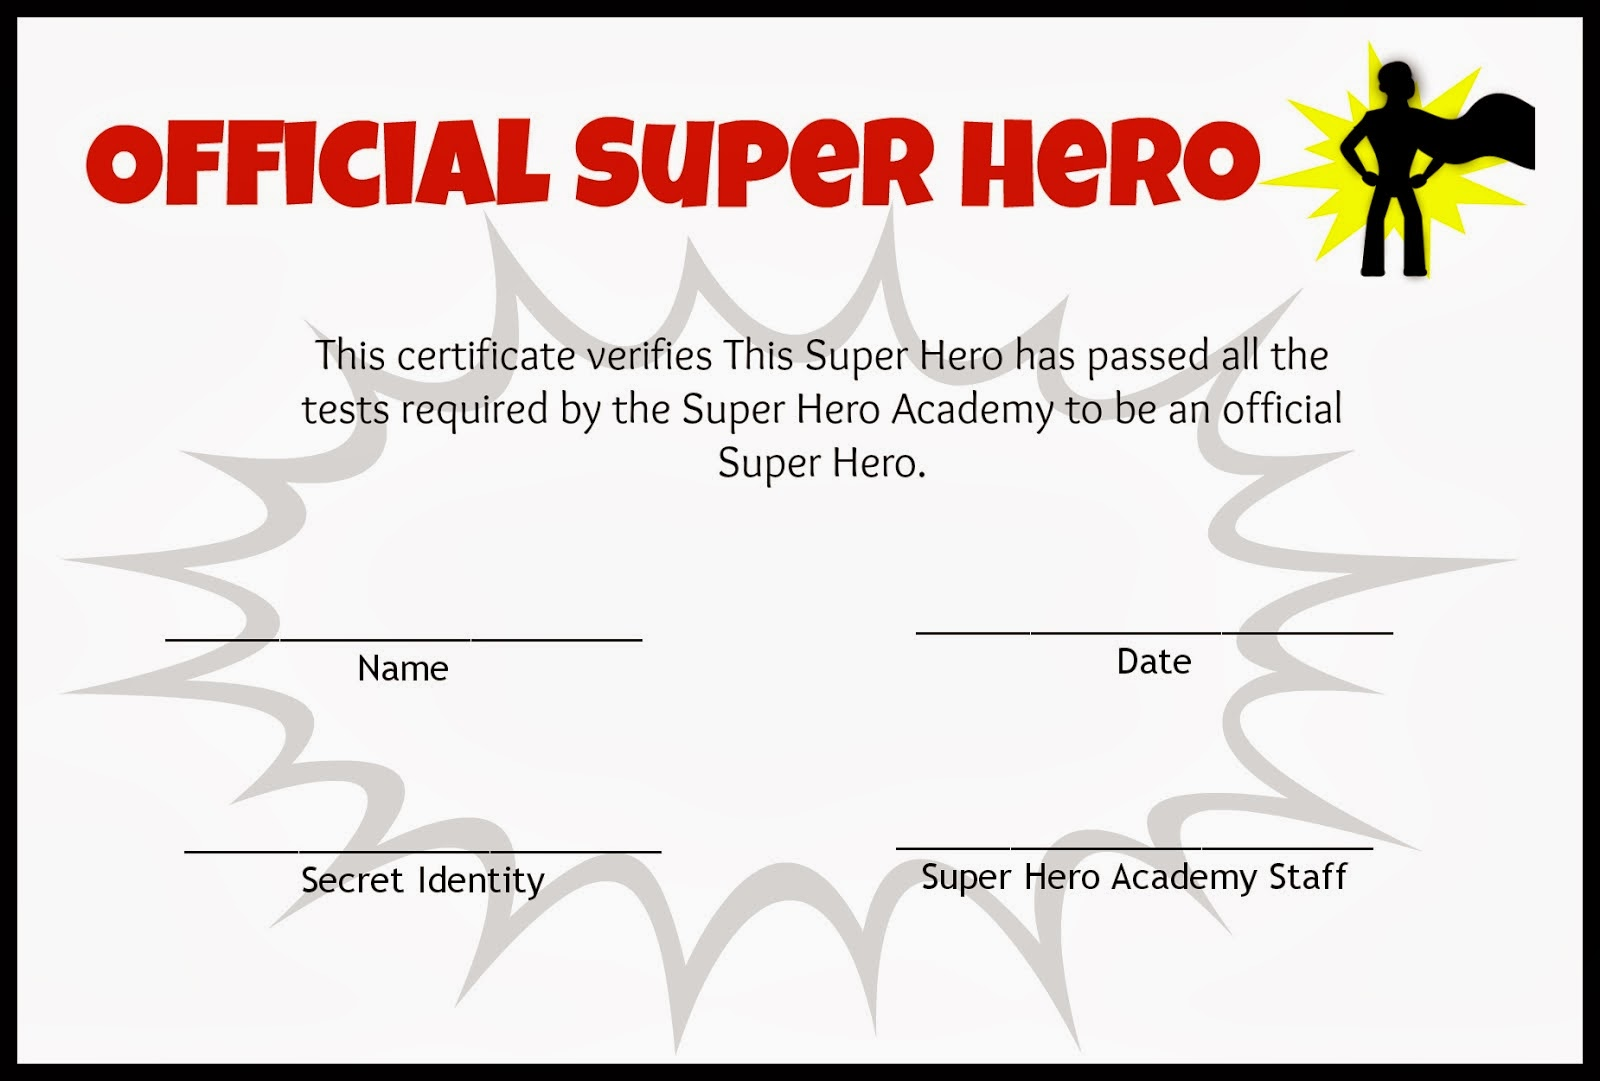 Certificate superhero training certificate template sale plan template grace gods riches at christs expense who is your hero super hero certificate who is your herohtml certificate superhero training certificate template xflitez Gallery